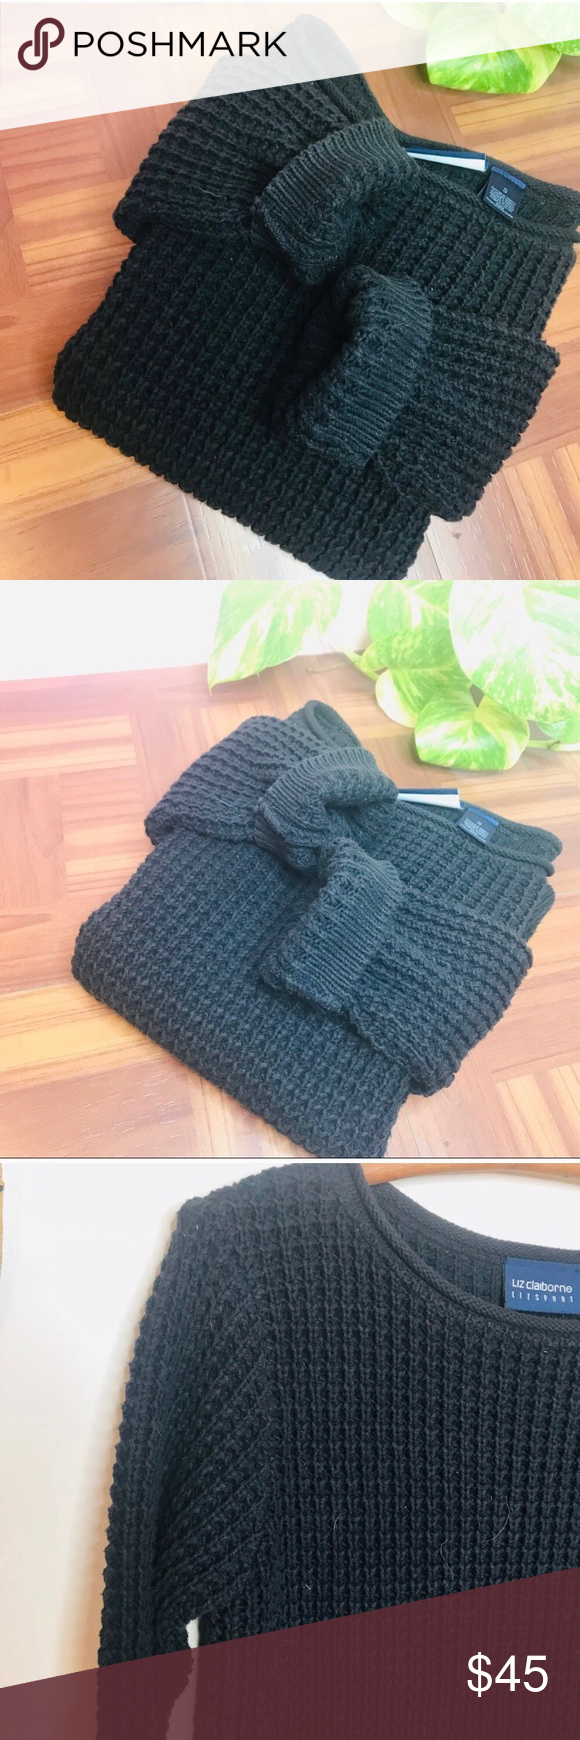 vtg vsco Crop Waffle Knit Black Boat Neck Sweater ViTG Crop Waffle Knit Black Boat Neck Sweater • Tags say small but would fit an XS nicely  Vsco bo...